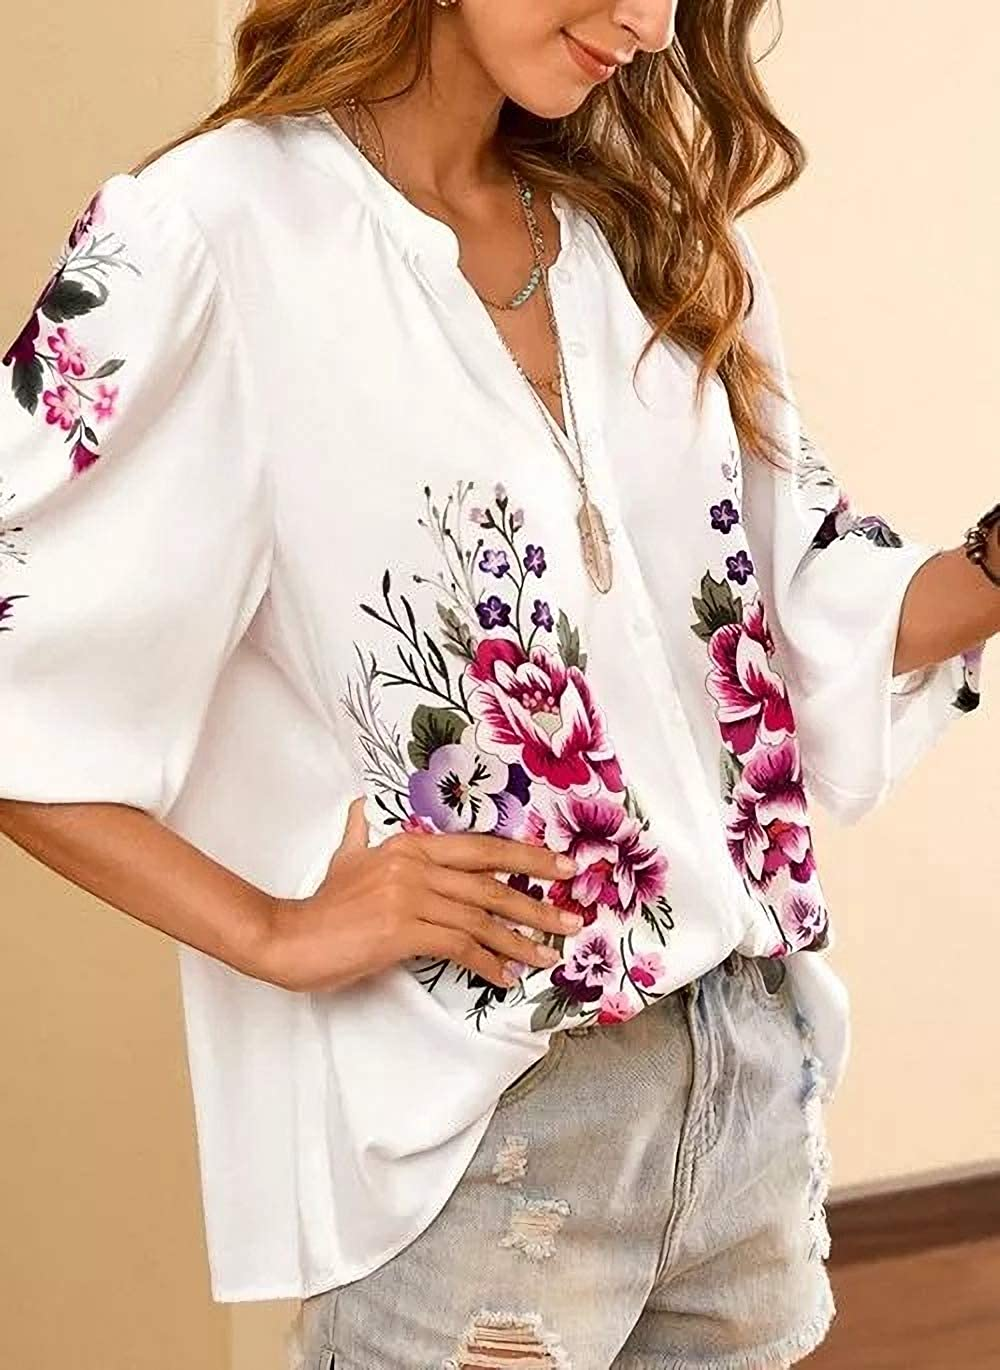 TICOSA 2021 New Women's Blouses Long Sleeved Button-Down Shirts